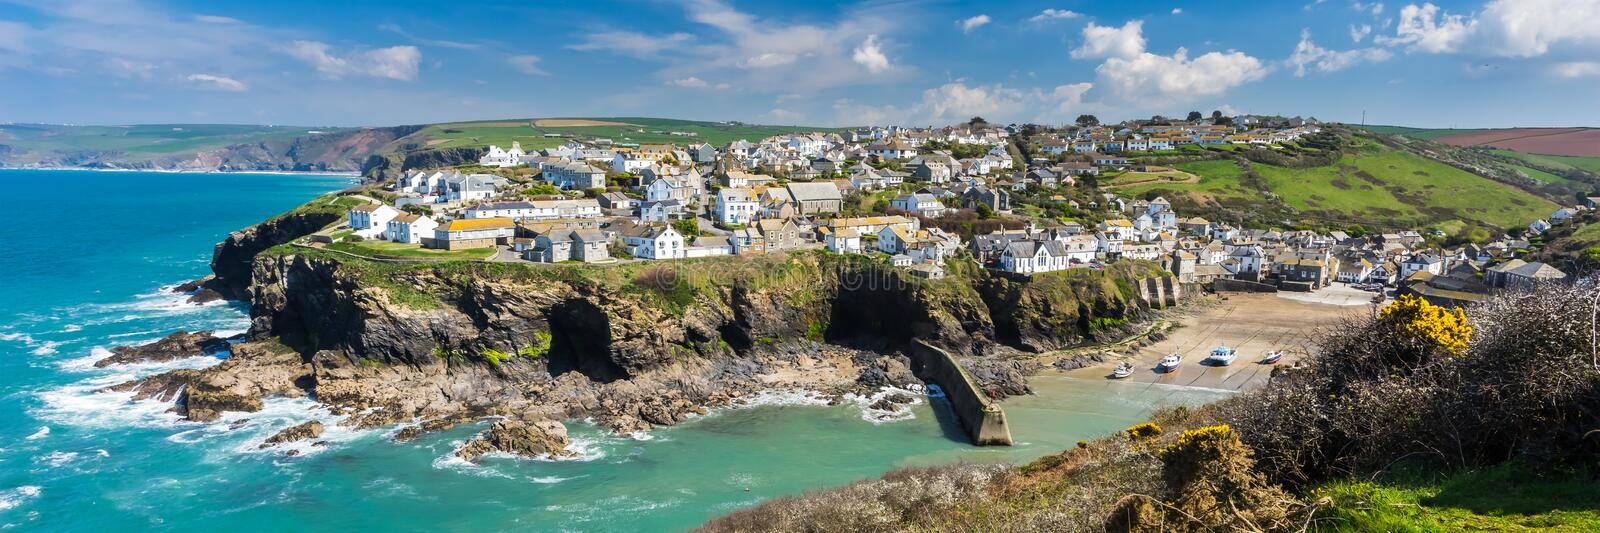 Port Isaac Cornwall England. Overlooking the harbour at the pretty fishing village of Port Isaac on the North Cornwall coast, England UK Europe stock photo